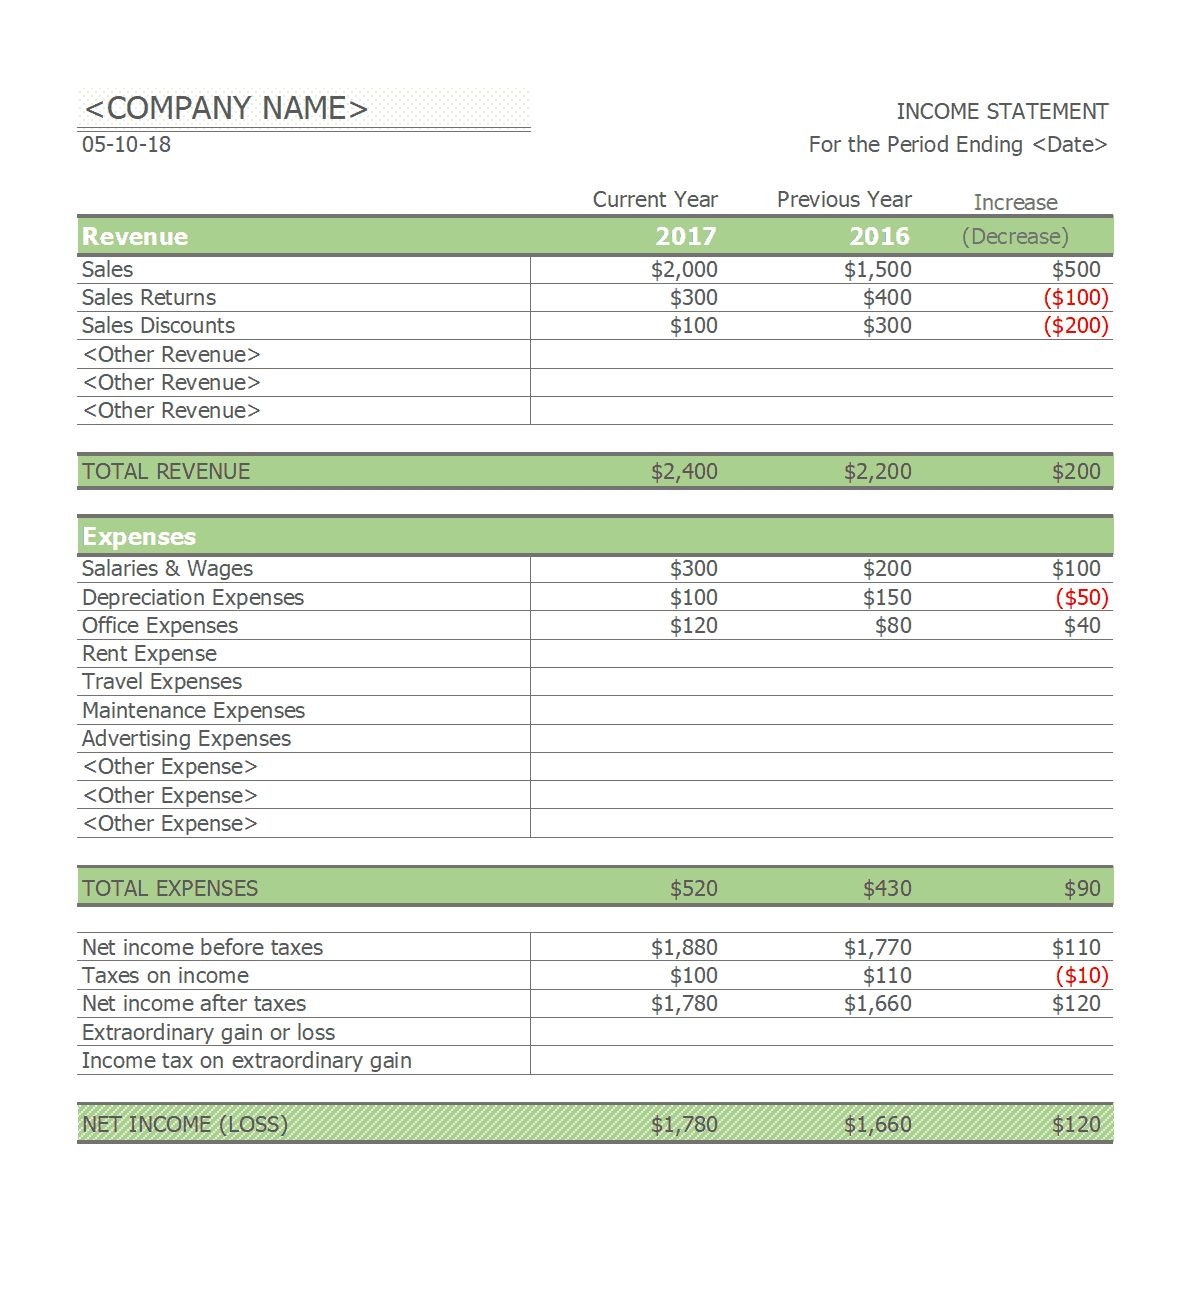 Self Employment Income Statement Template Beautiful Business Profit And Loss Statement For Self E Profit And Loss Statement Statement Template Income Statement